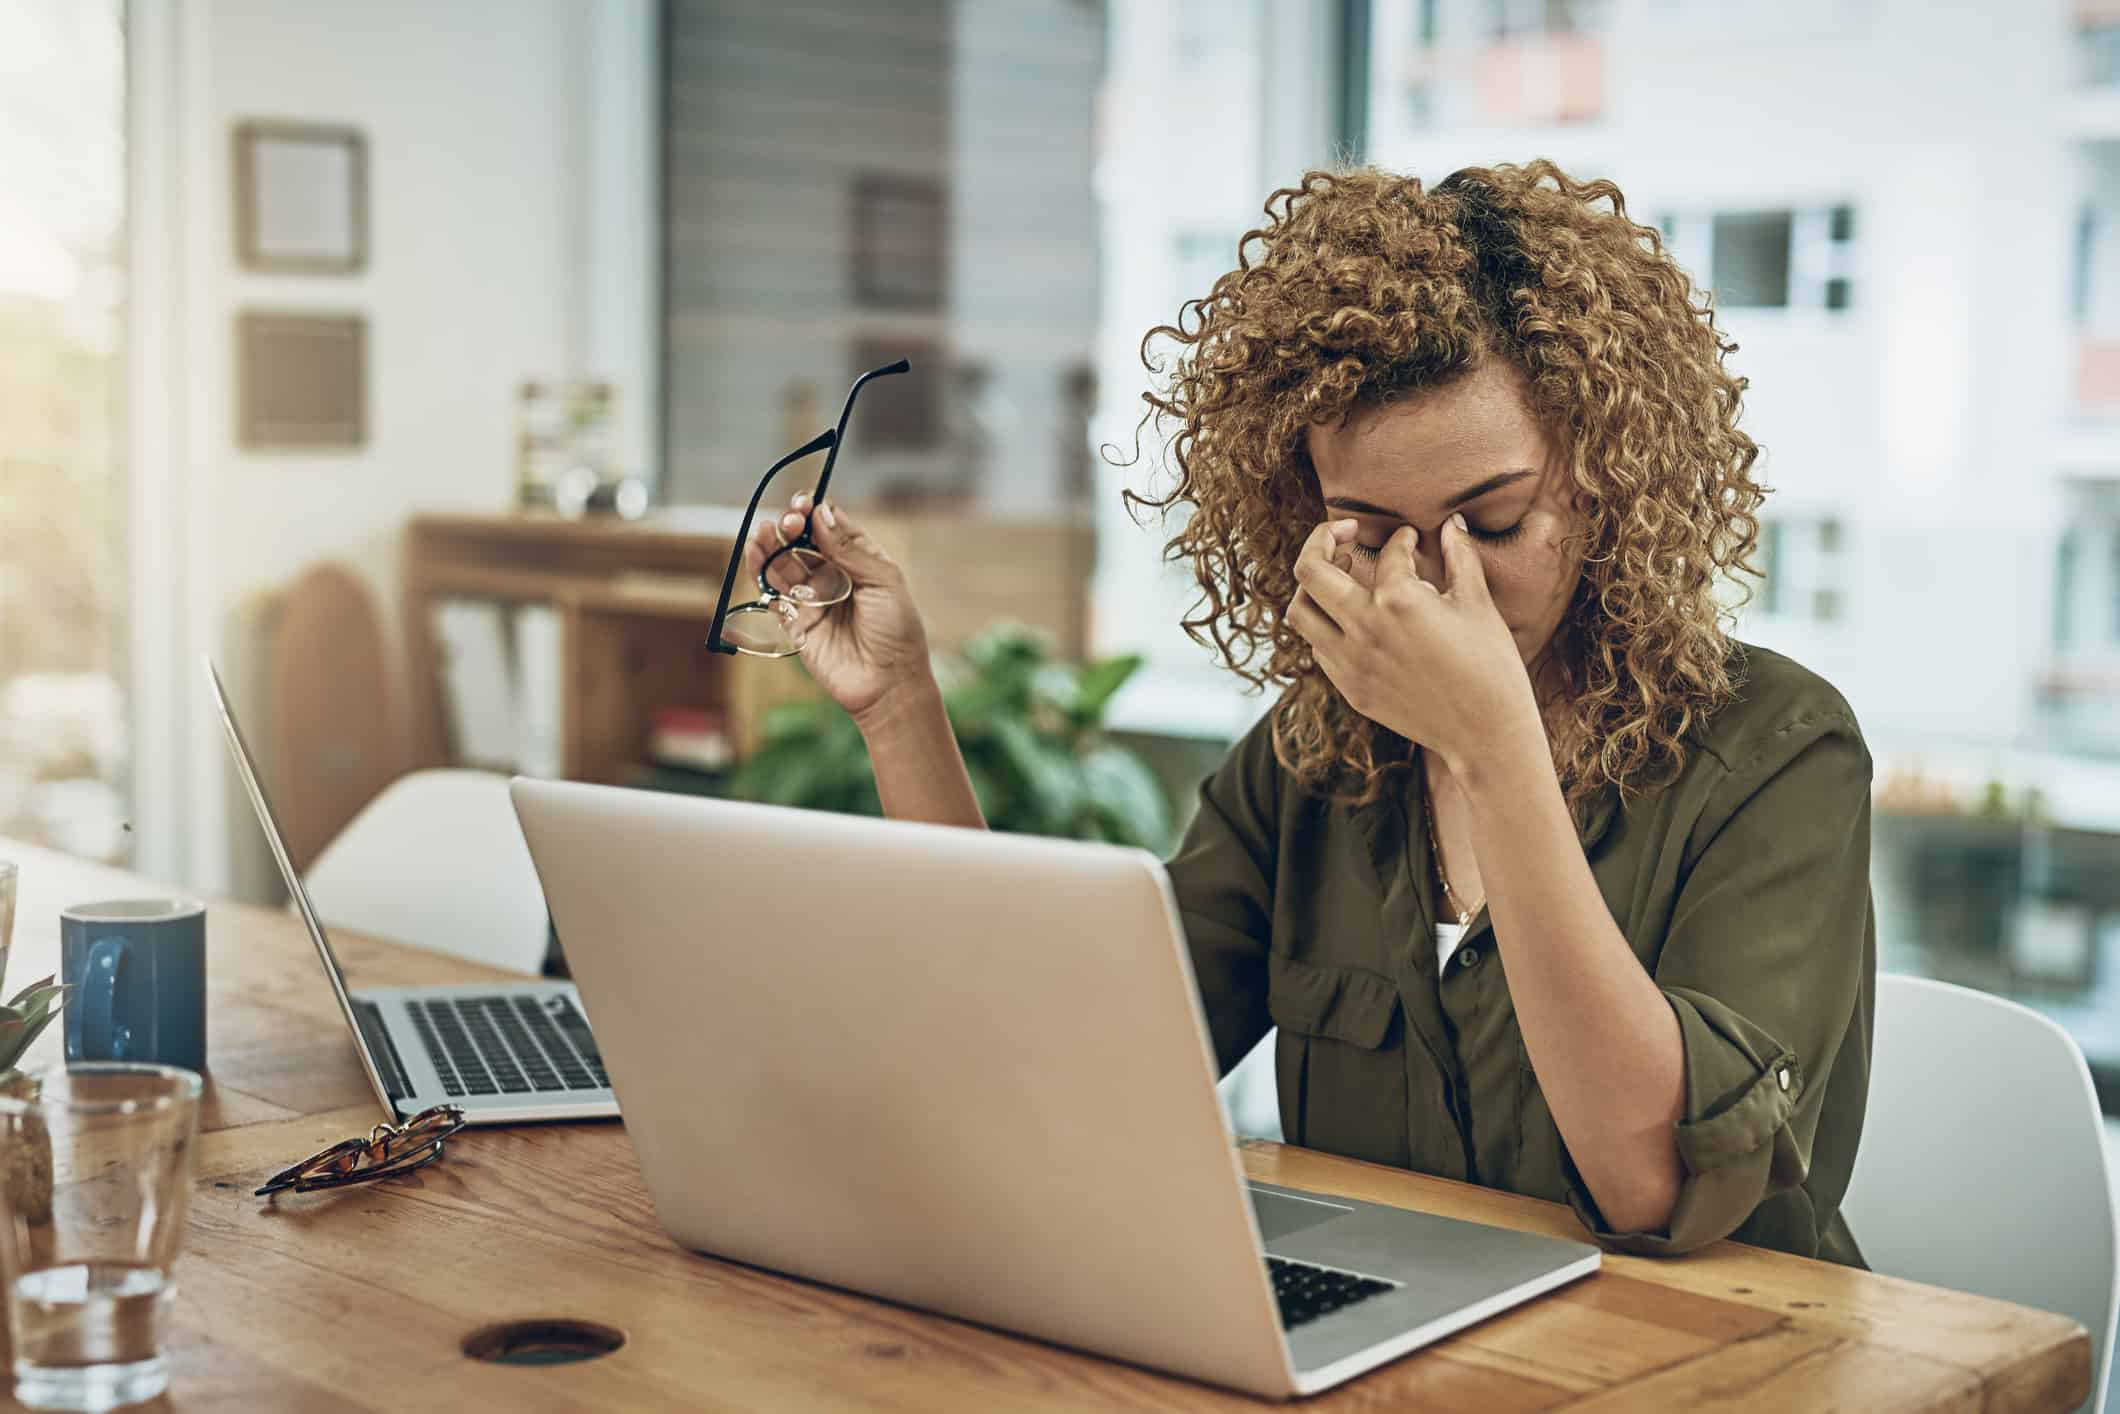 Shot of a young woman suffering from stress while using a computer at her work desk.